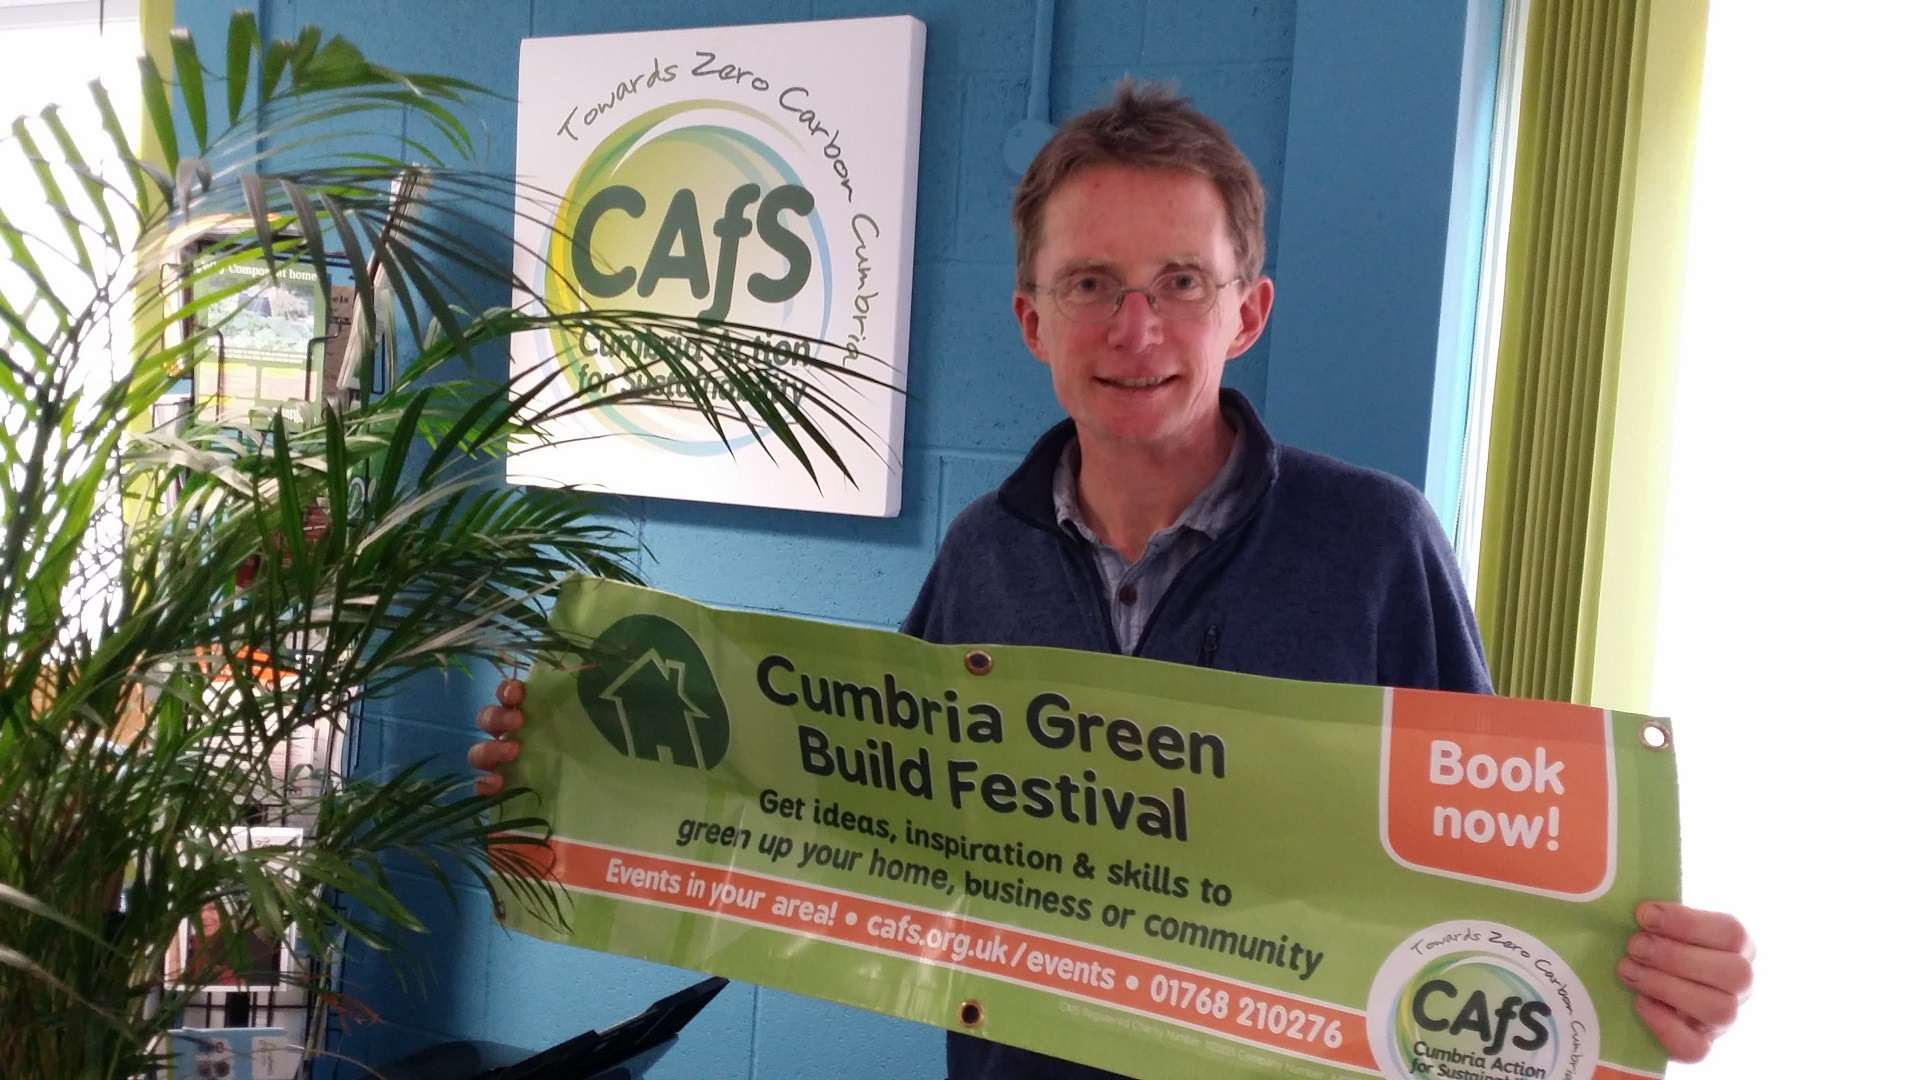 Nigel Jenkins, Cumbria Green Build & Sustainable Living Festival Coordinator at CAfS